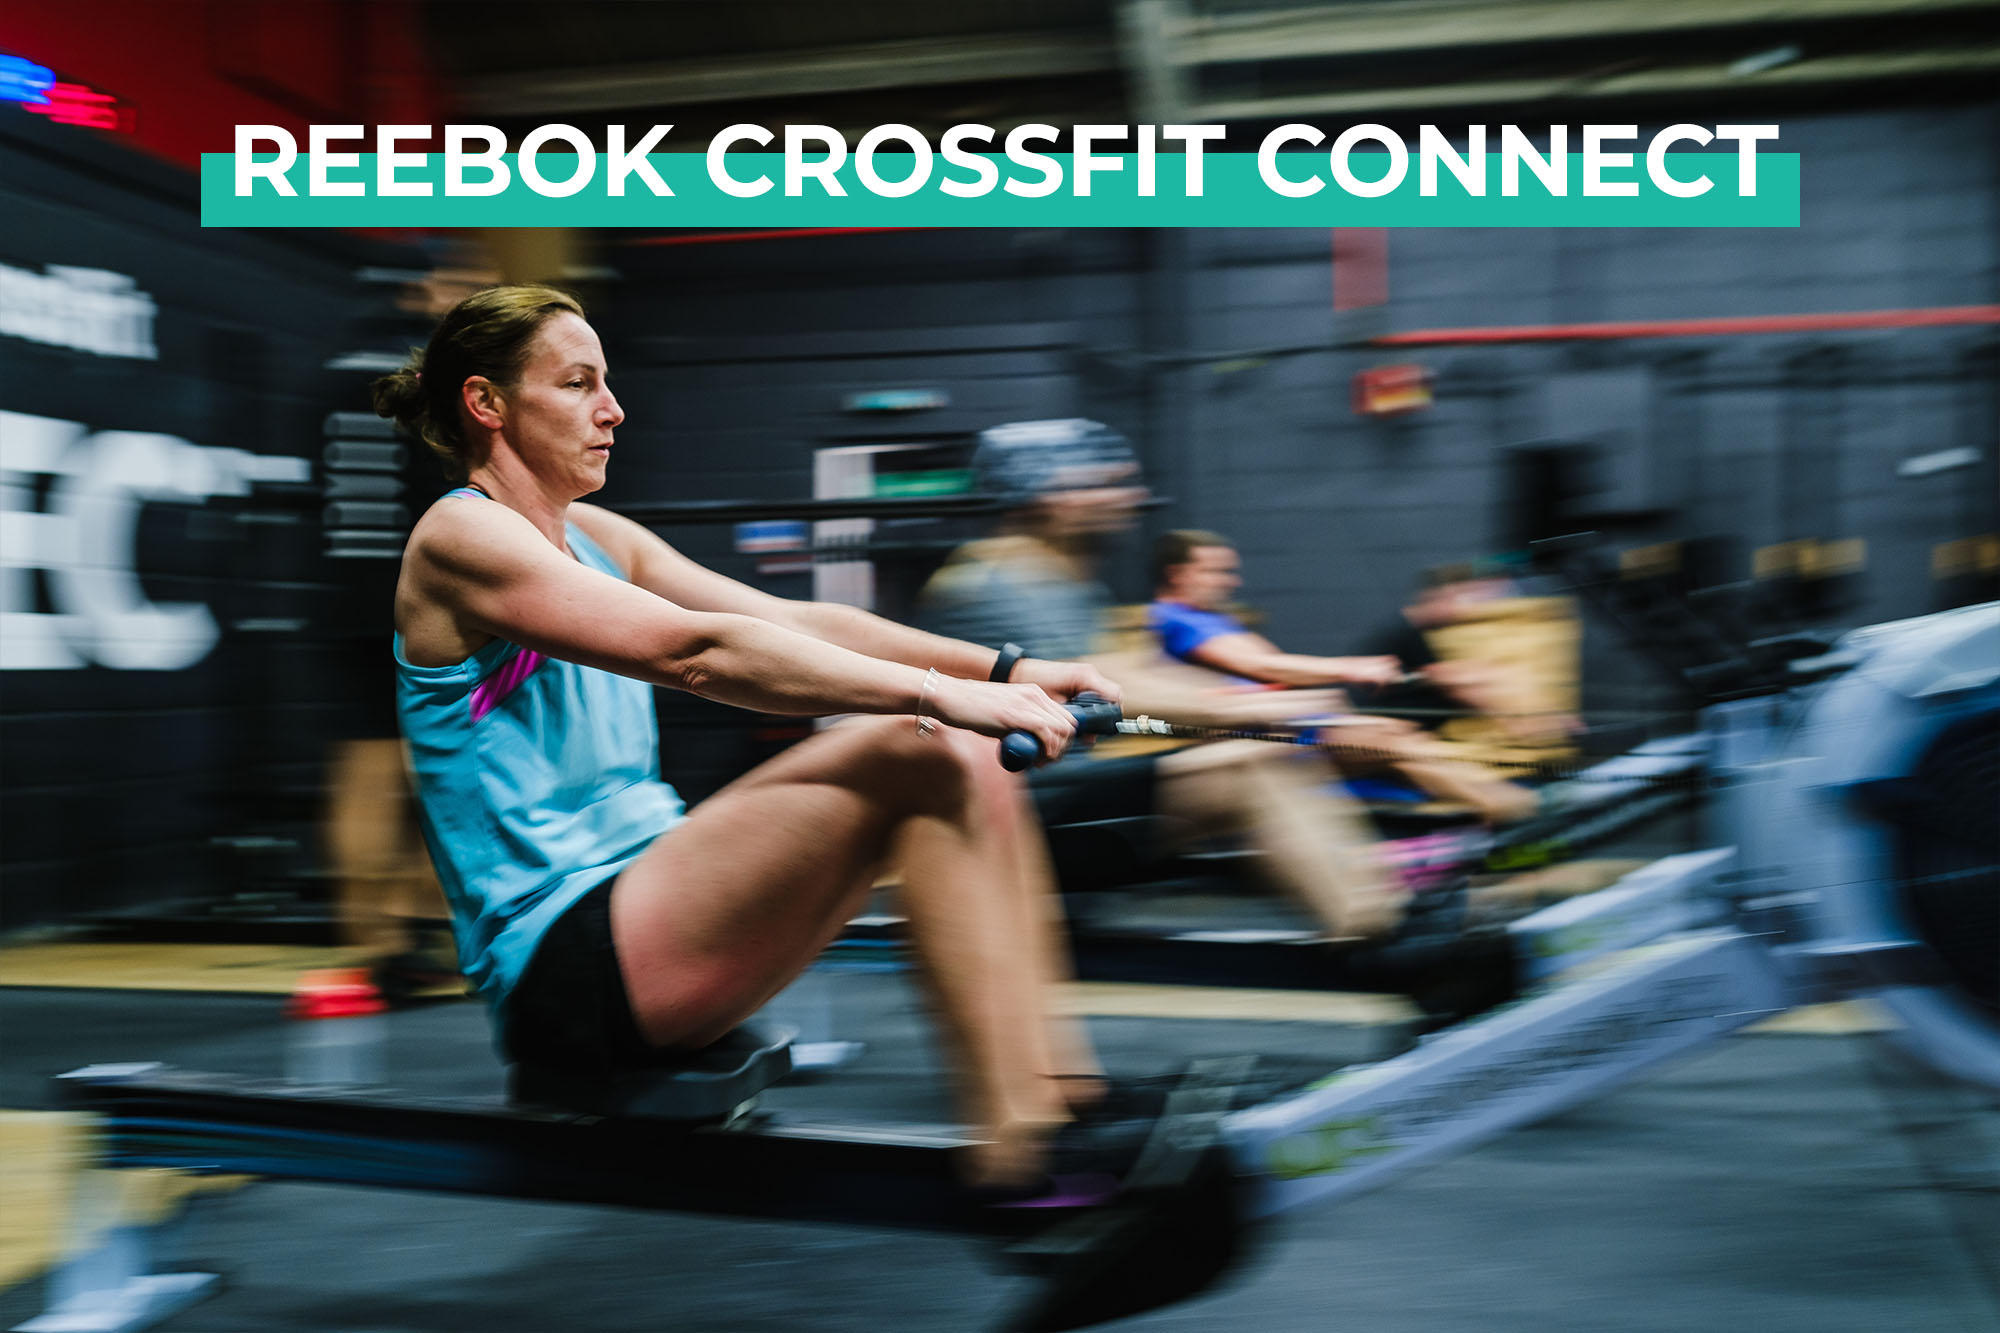 commercial branded project crossfit